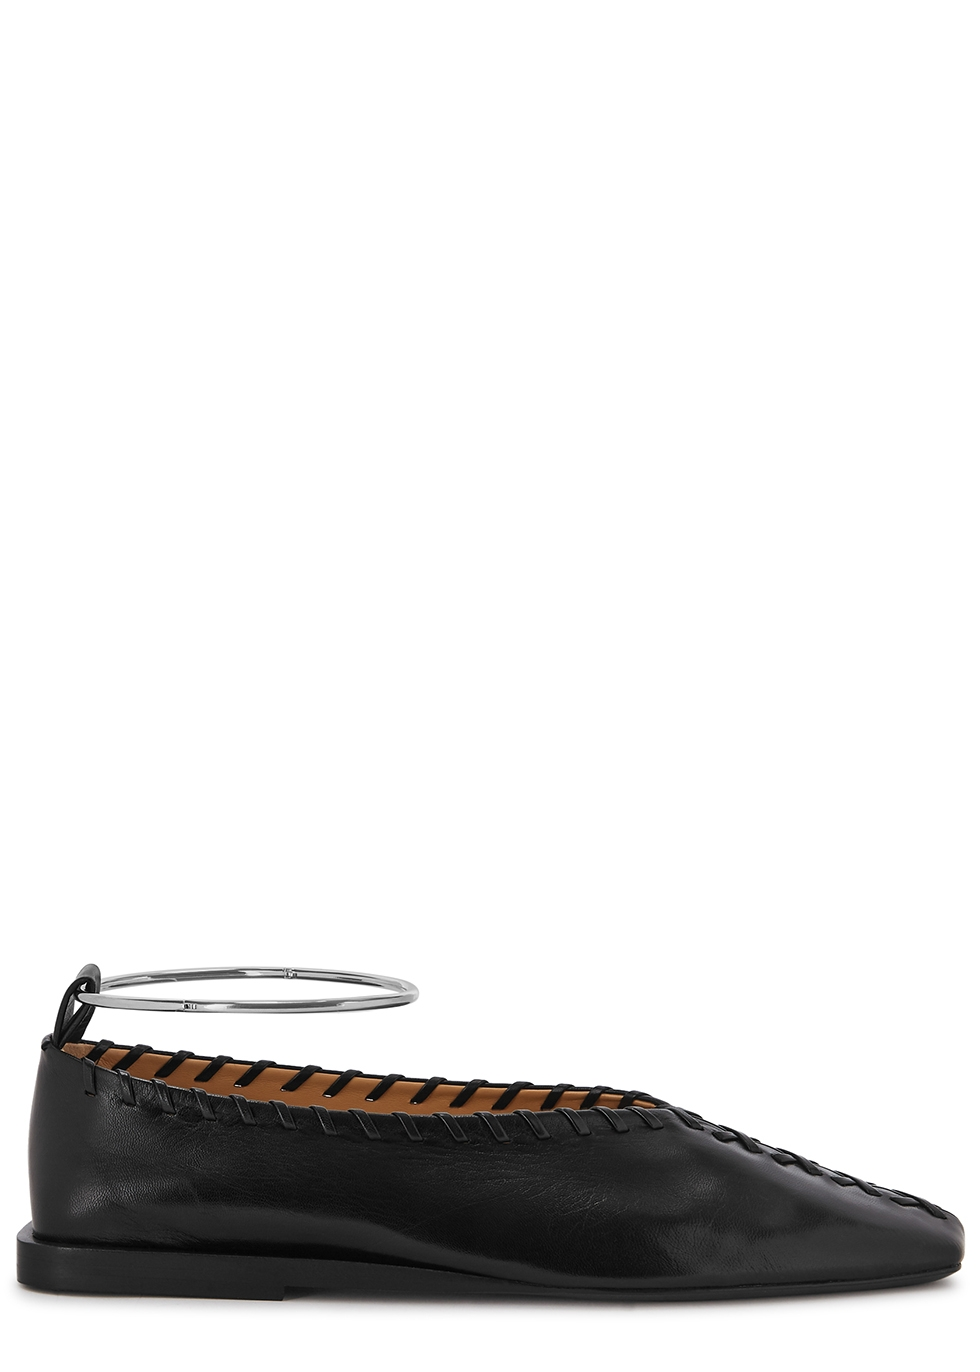 Black whipstitched leather flats